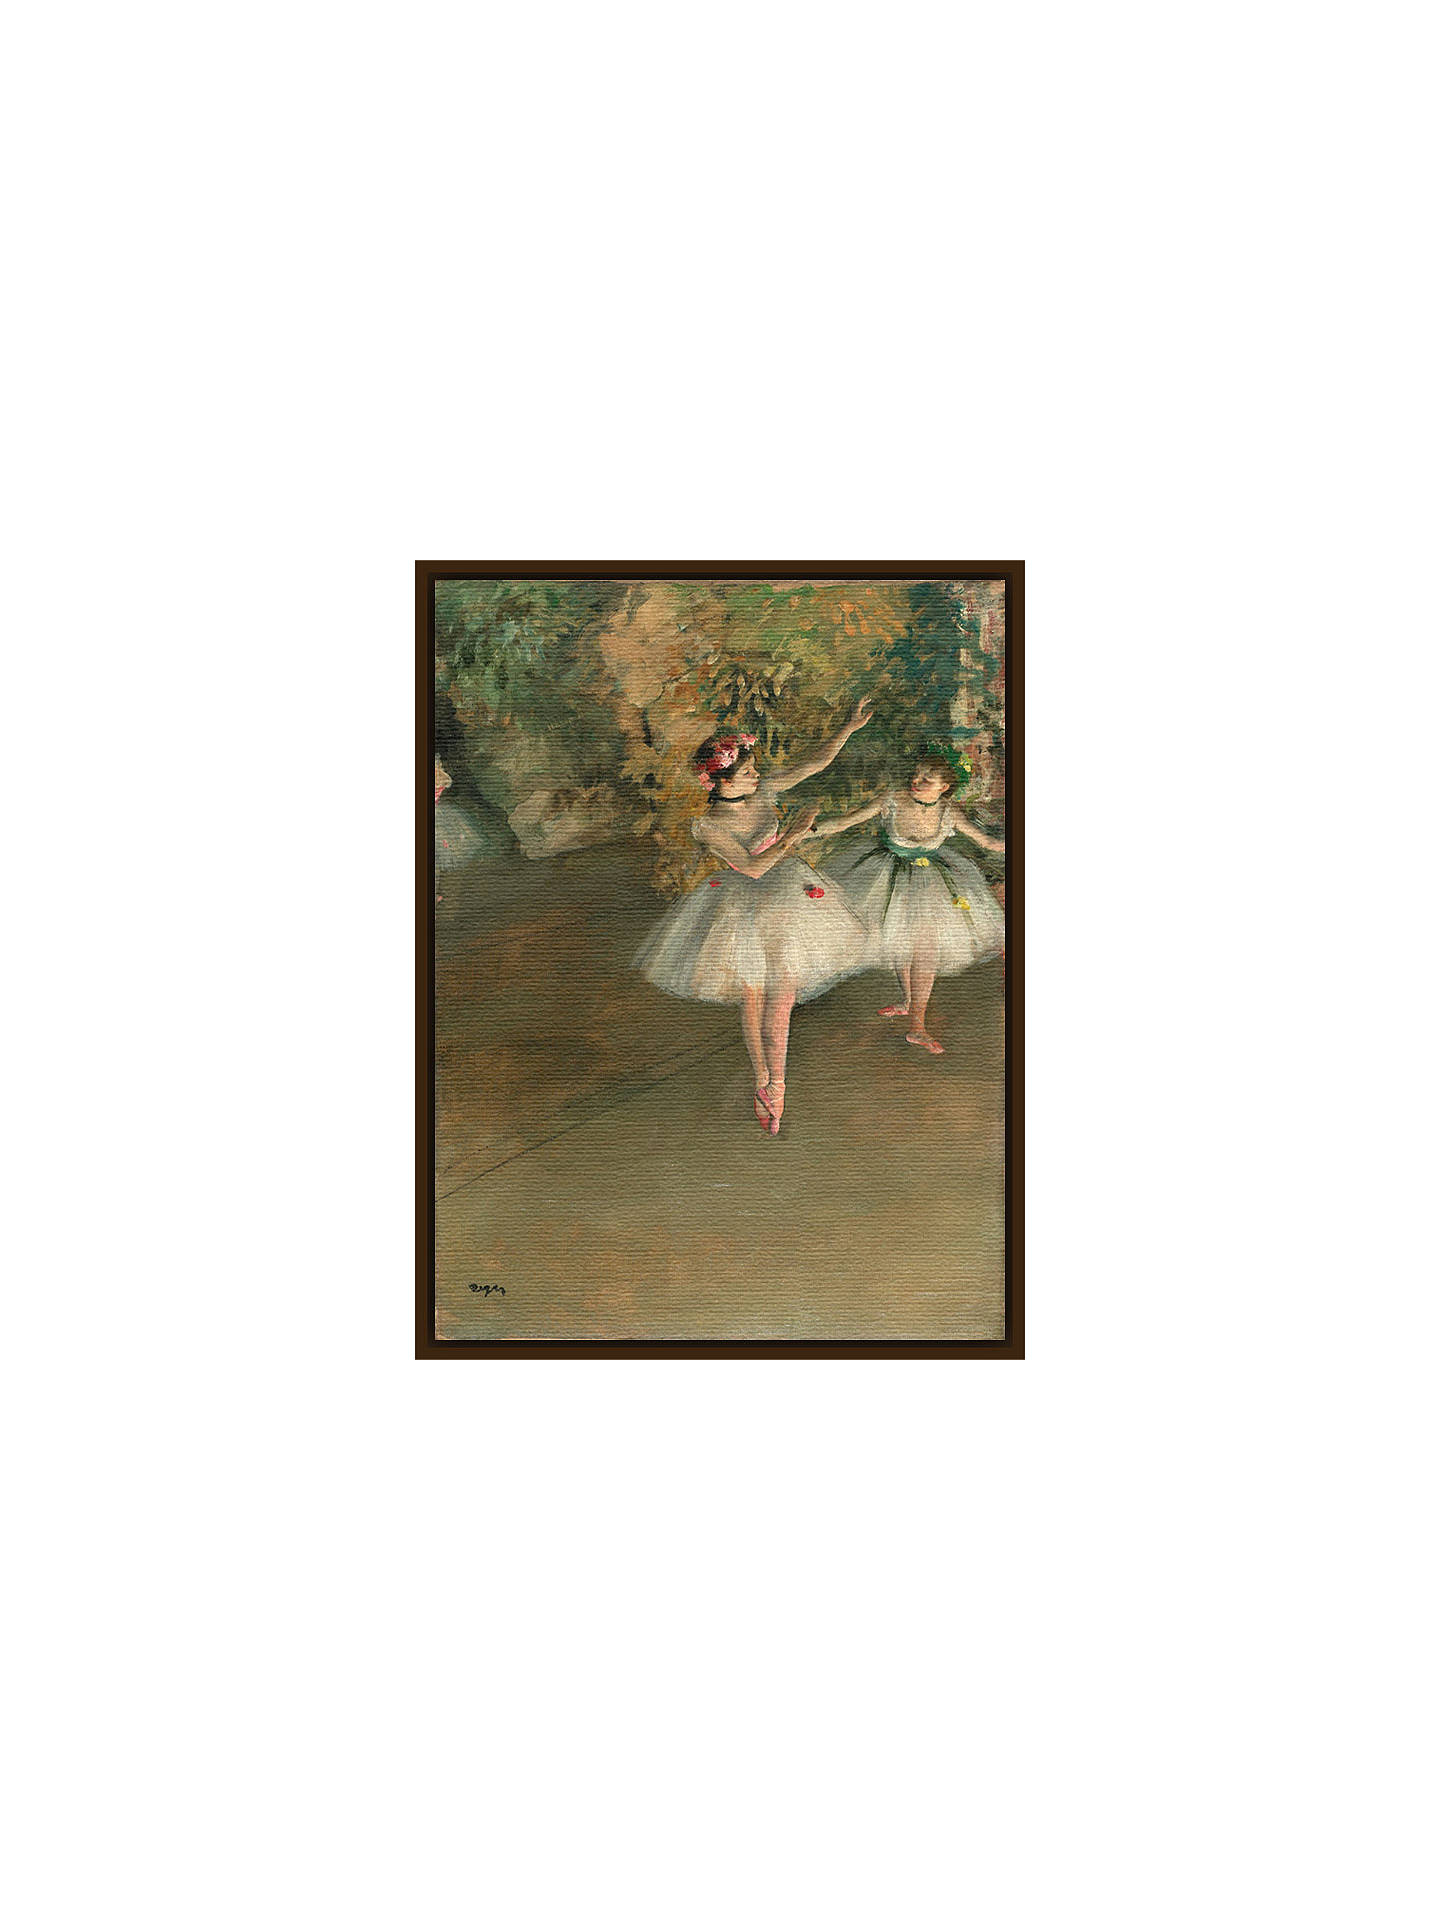 BuyThe Courtauld Gallery, Edgar Degas - Two Dancers on a Stage 1874 Print, Dark Brown Framed Canvas, 50 x 40cm Online at johnlewis.com